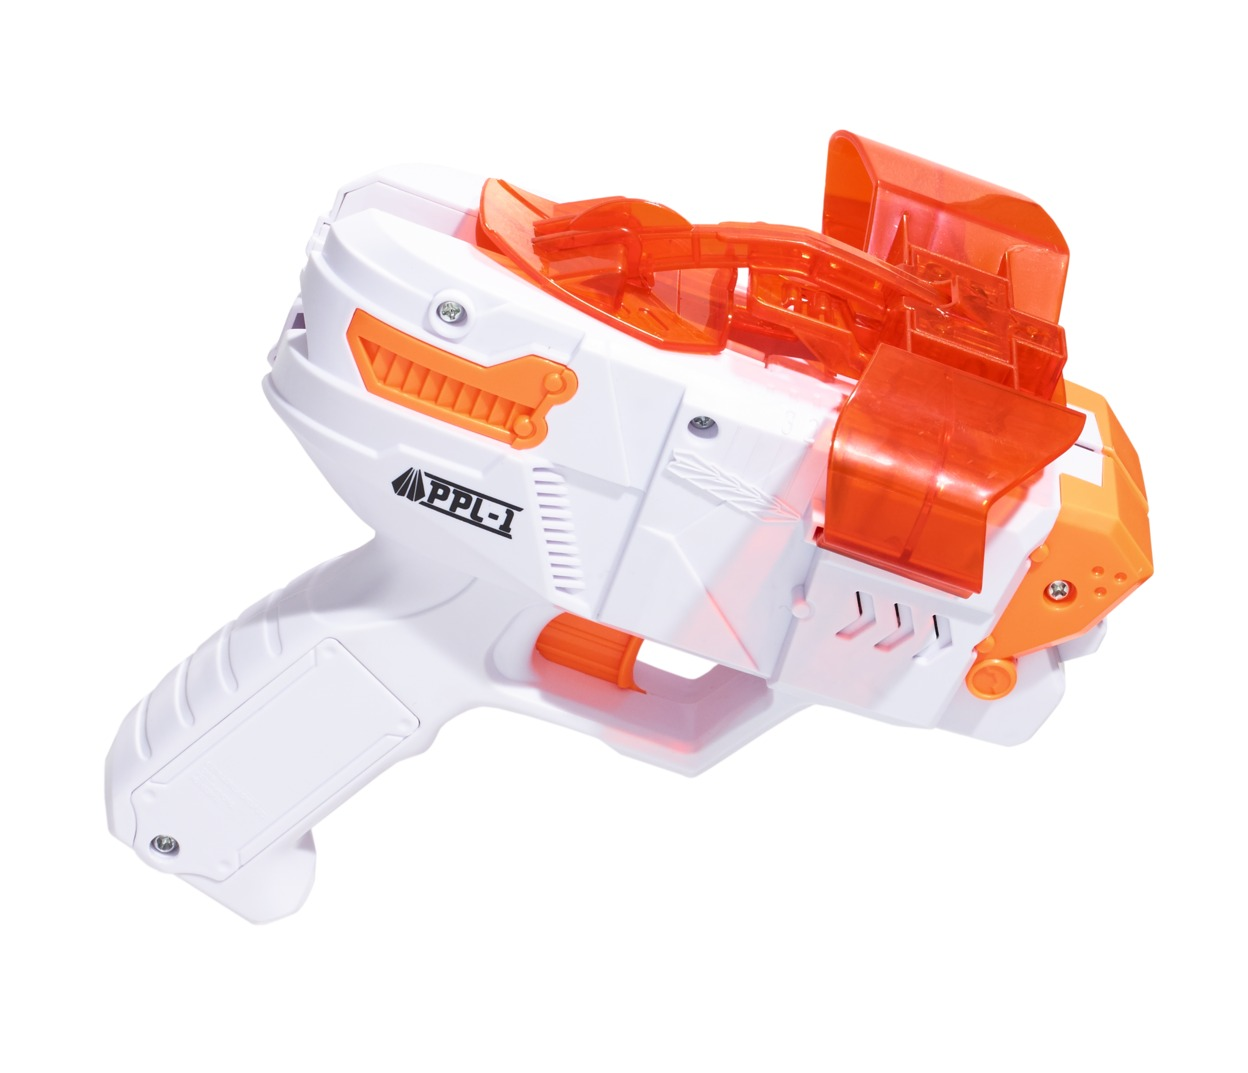 2016 Toys of the Year Skypaper Paper Plane Launcher